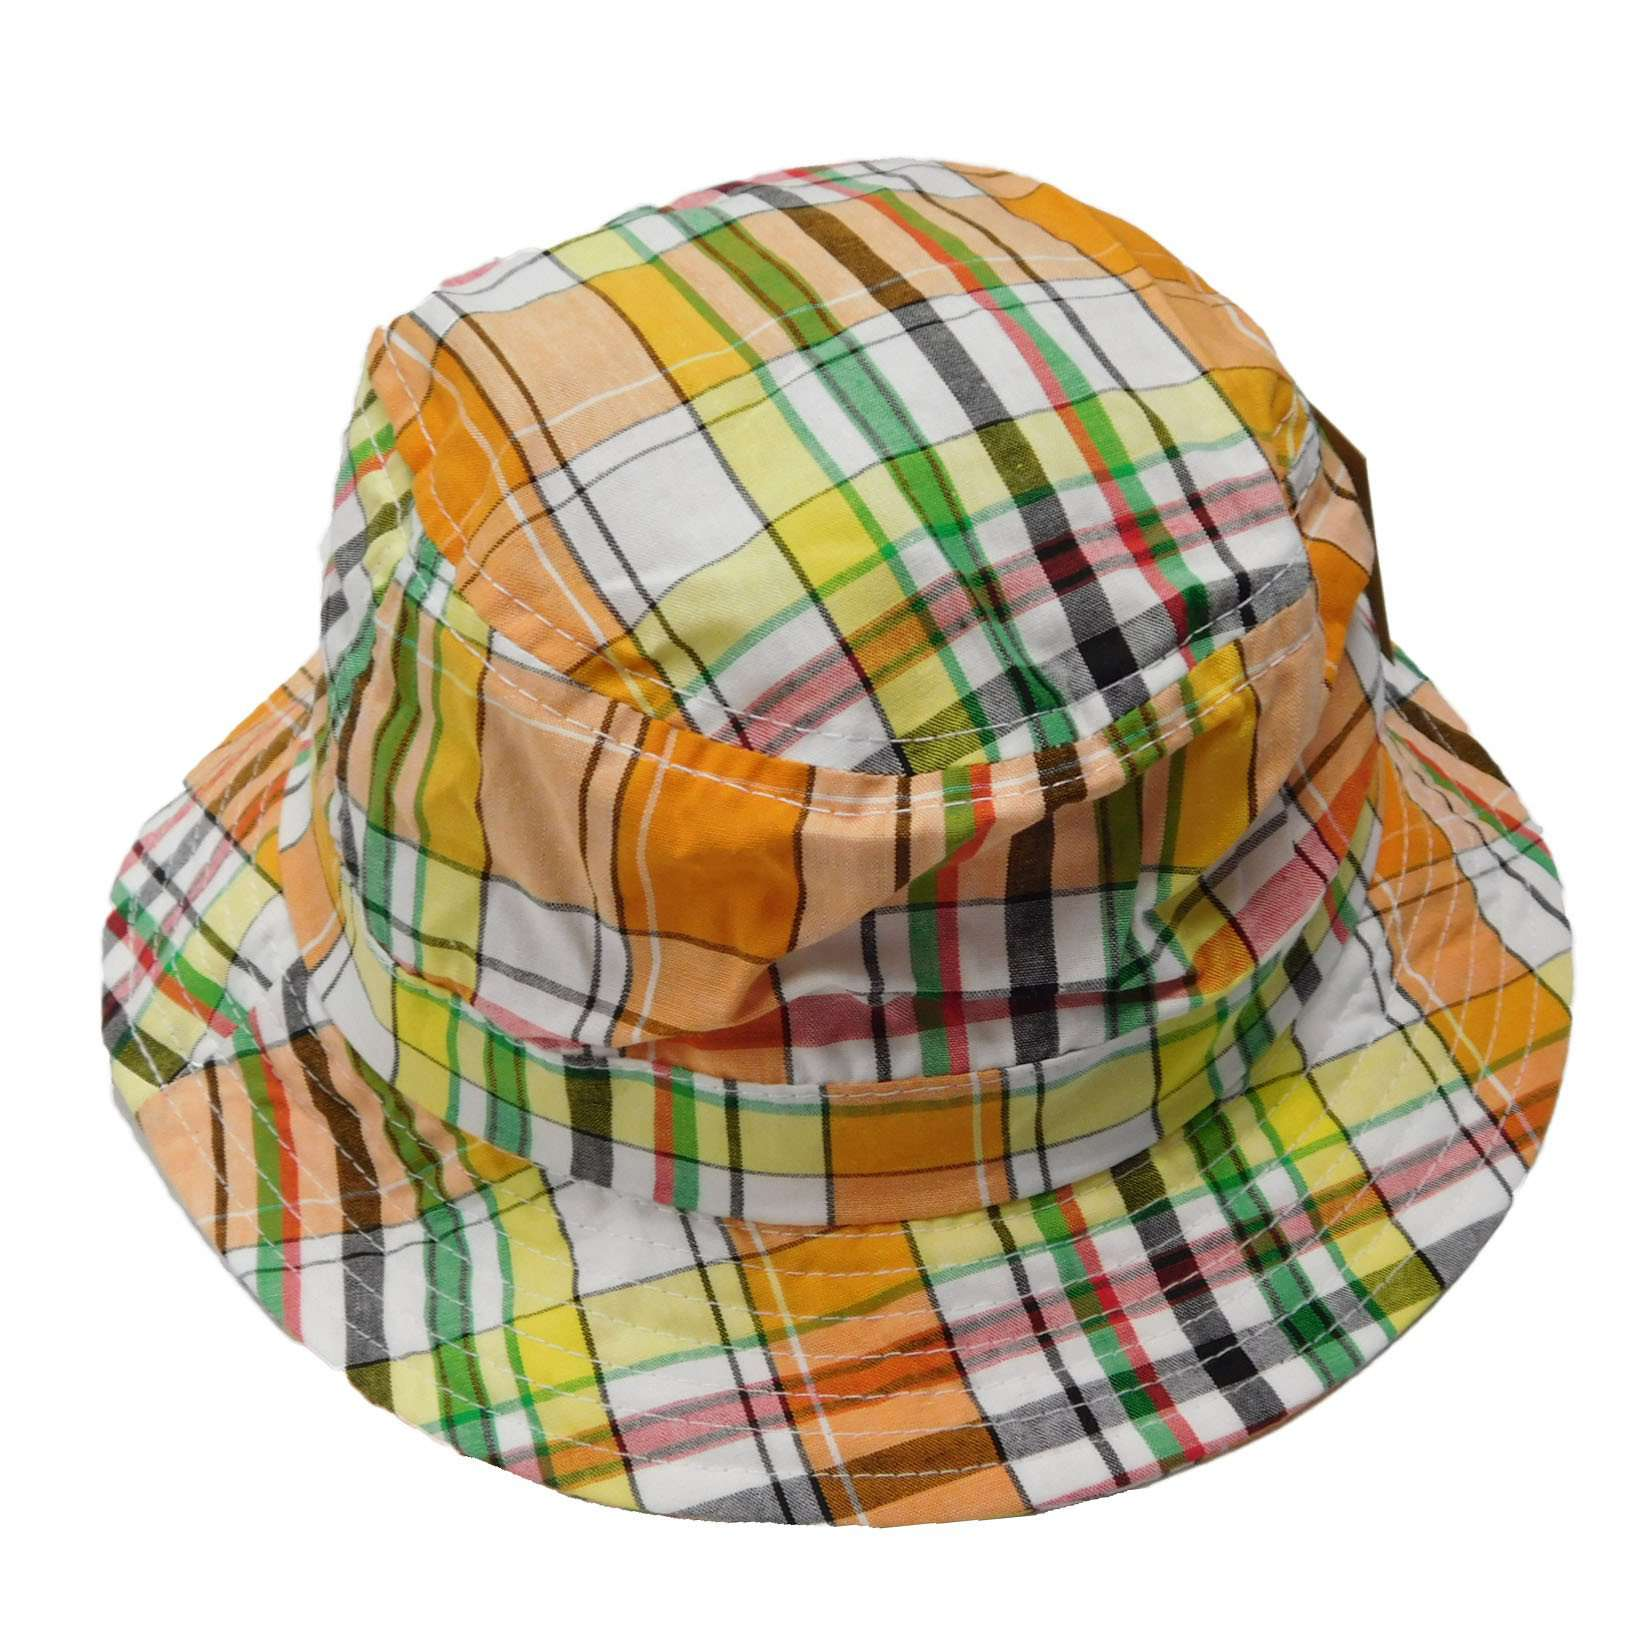 Tropical Trends Plaid Golf Bucket Hat  e27ddc3d73e7